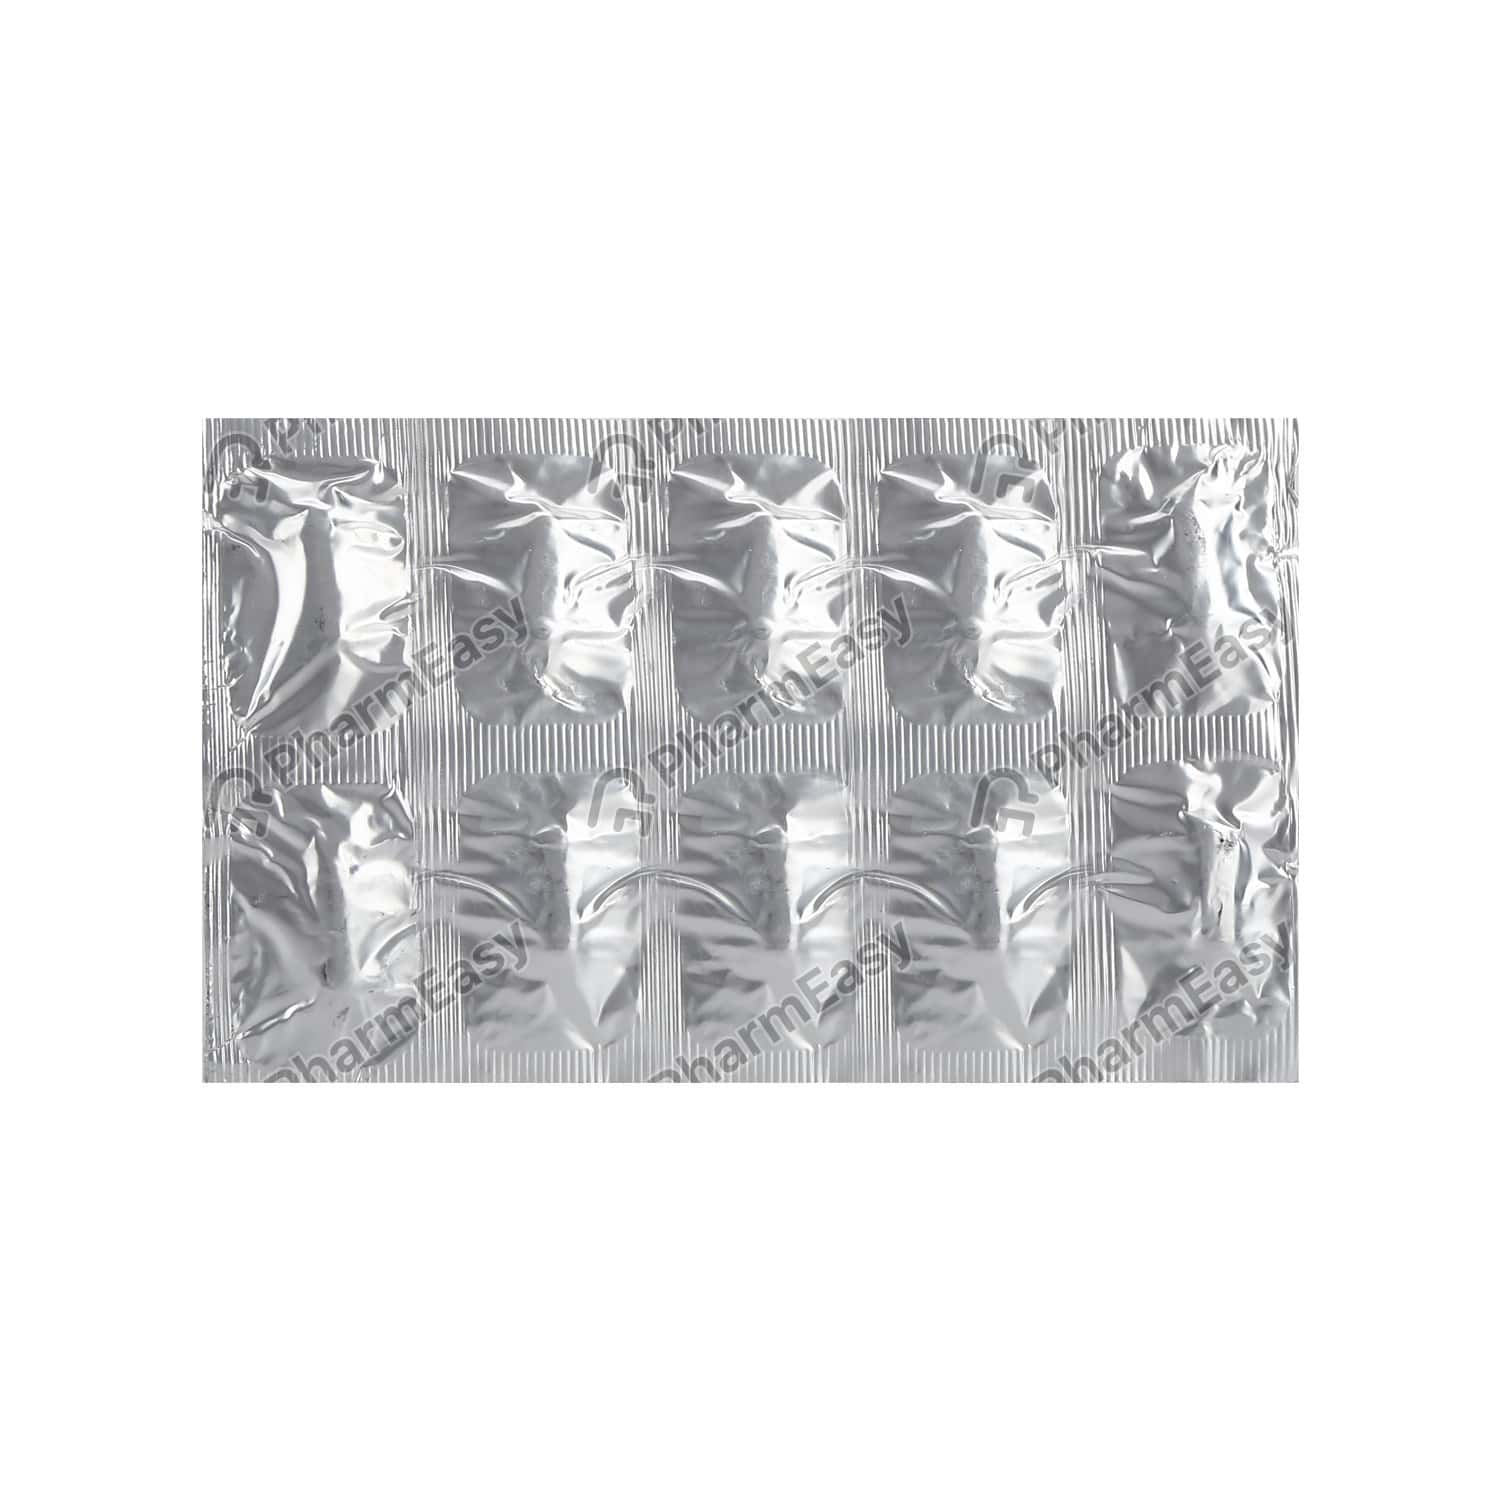 Rosuless Gold 10mg Strip Of 10 Capsules